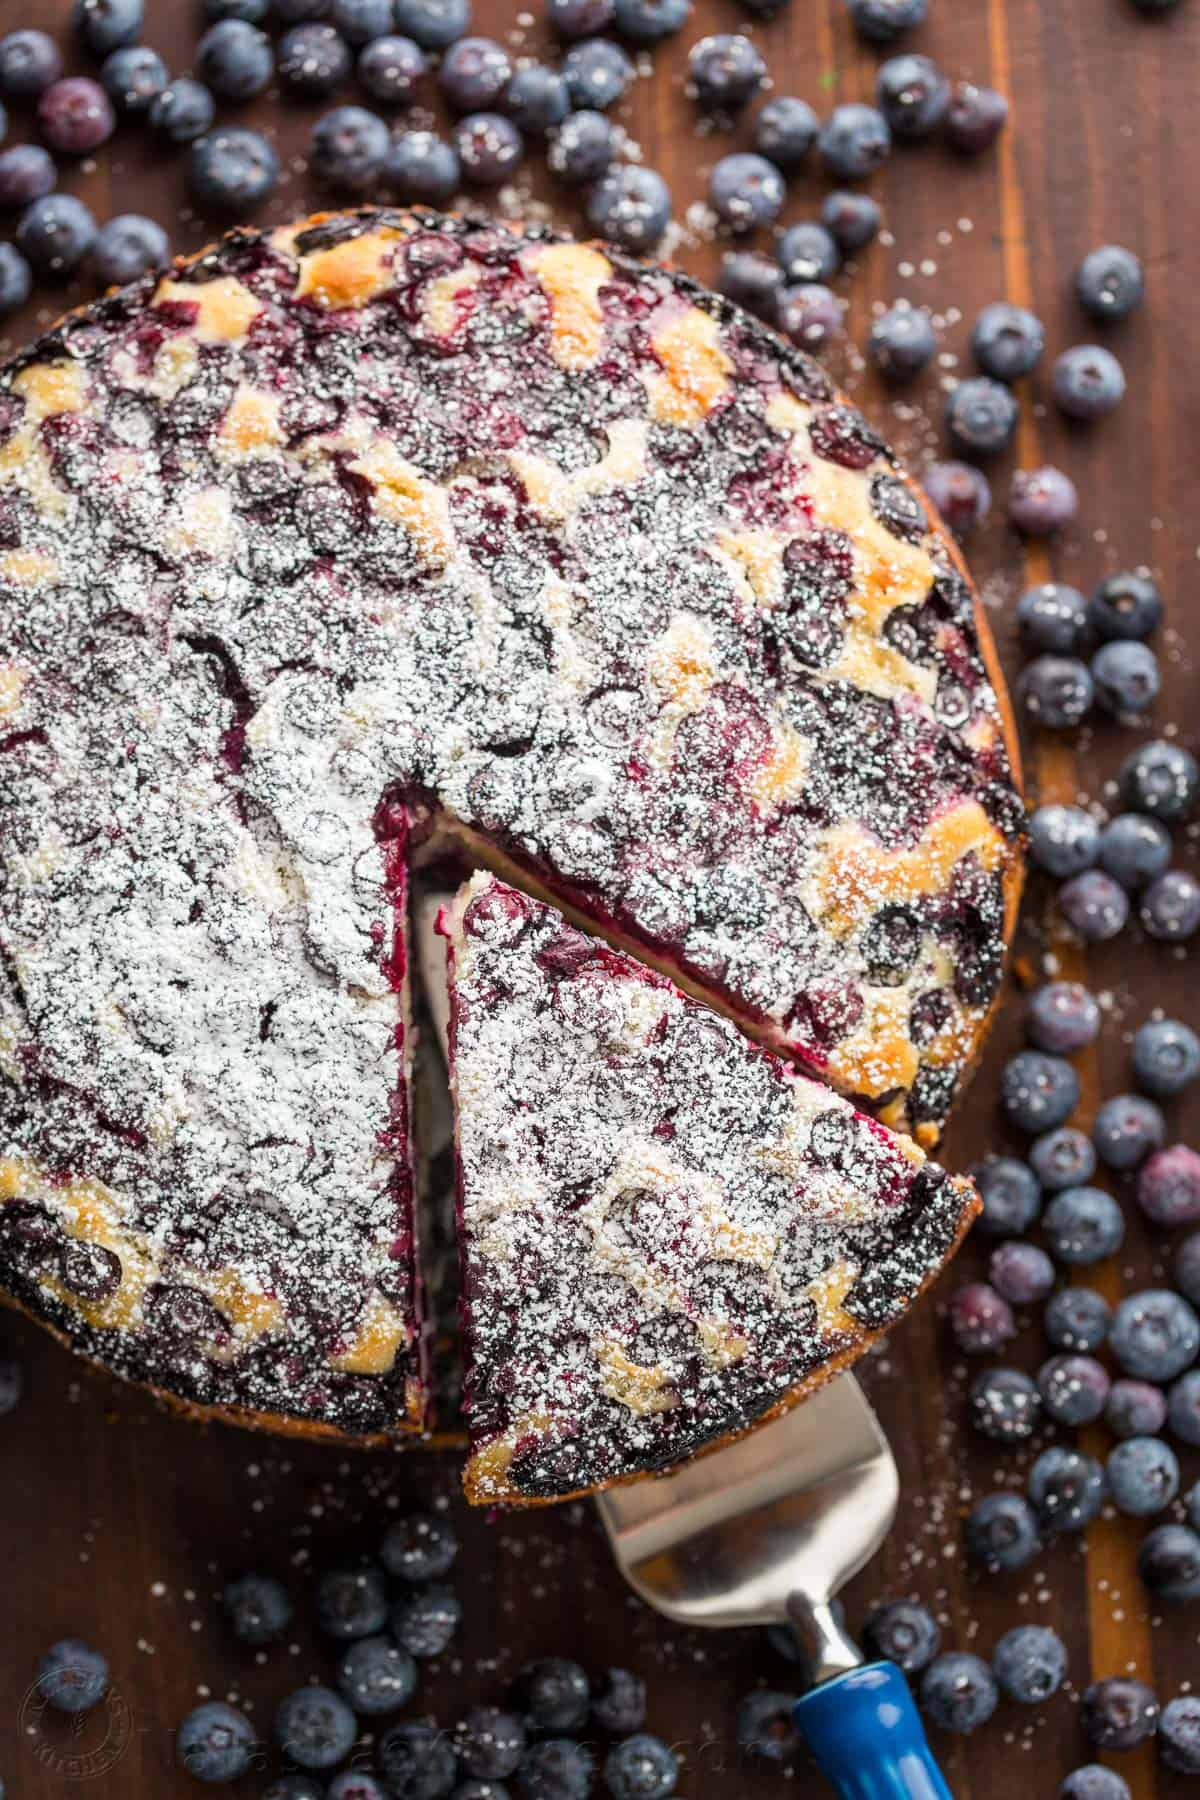 Natashaskitchen Blueberry Lemon Cake